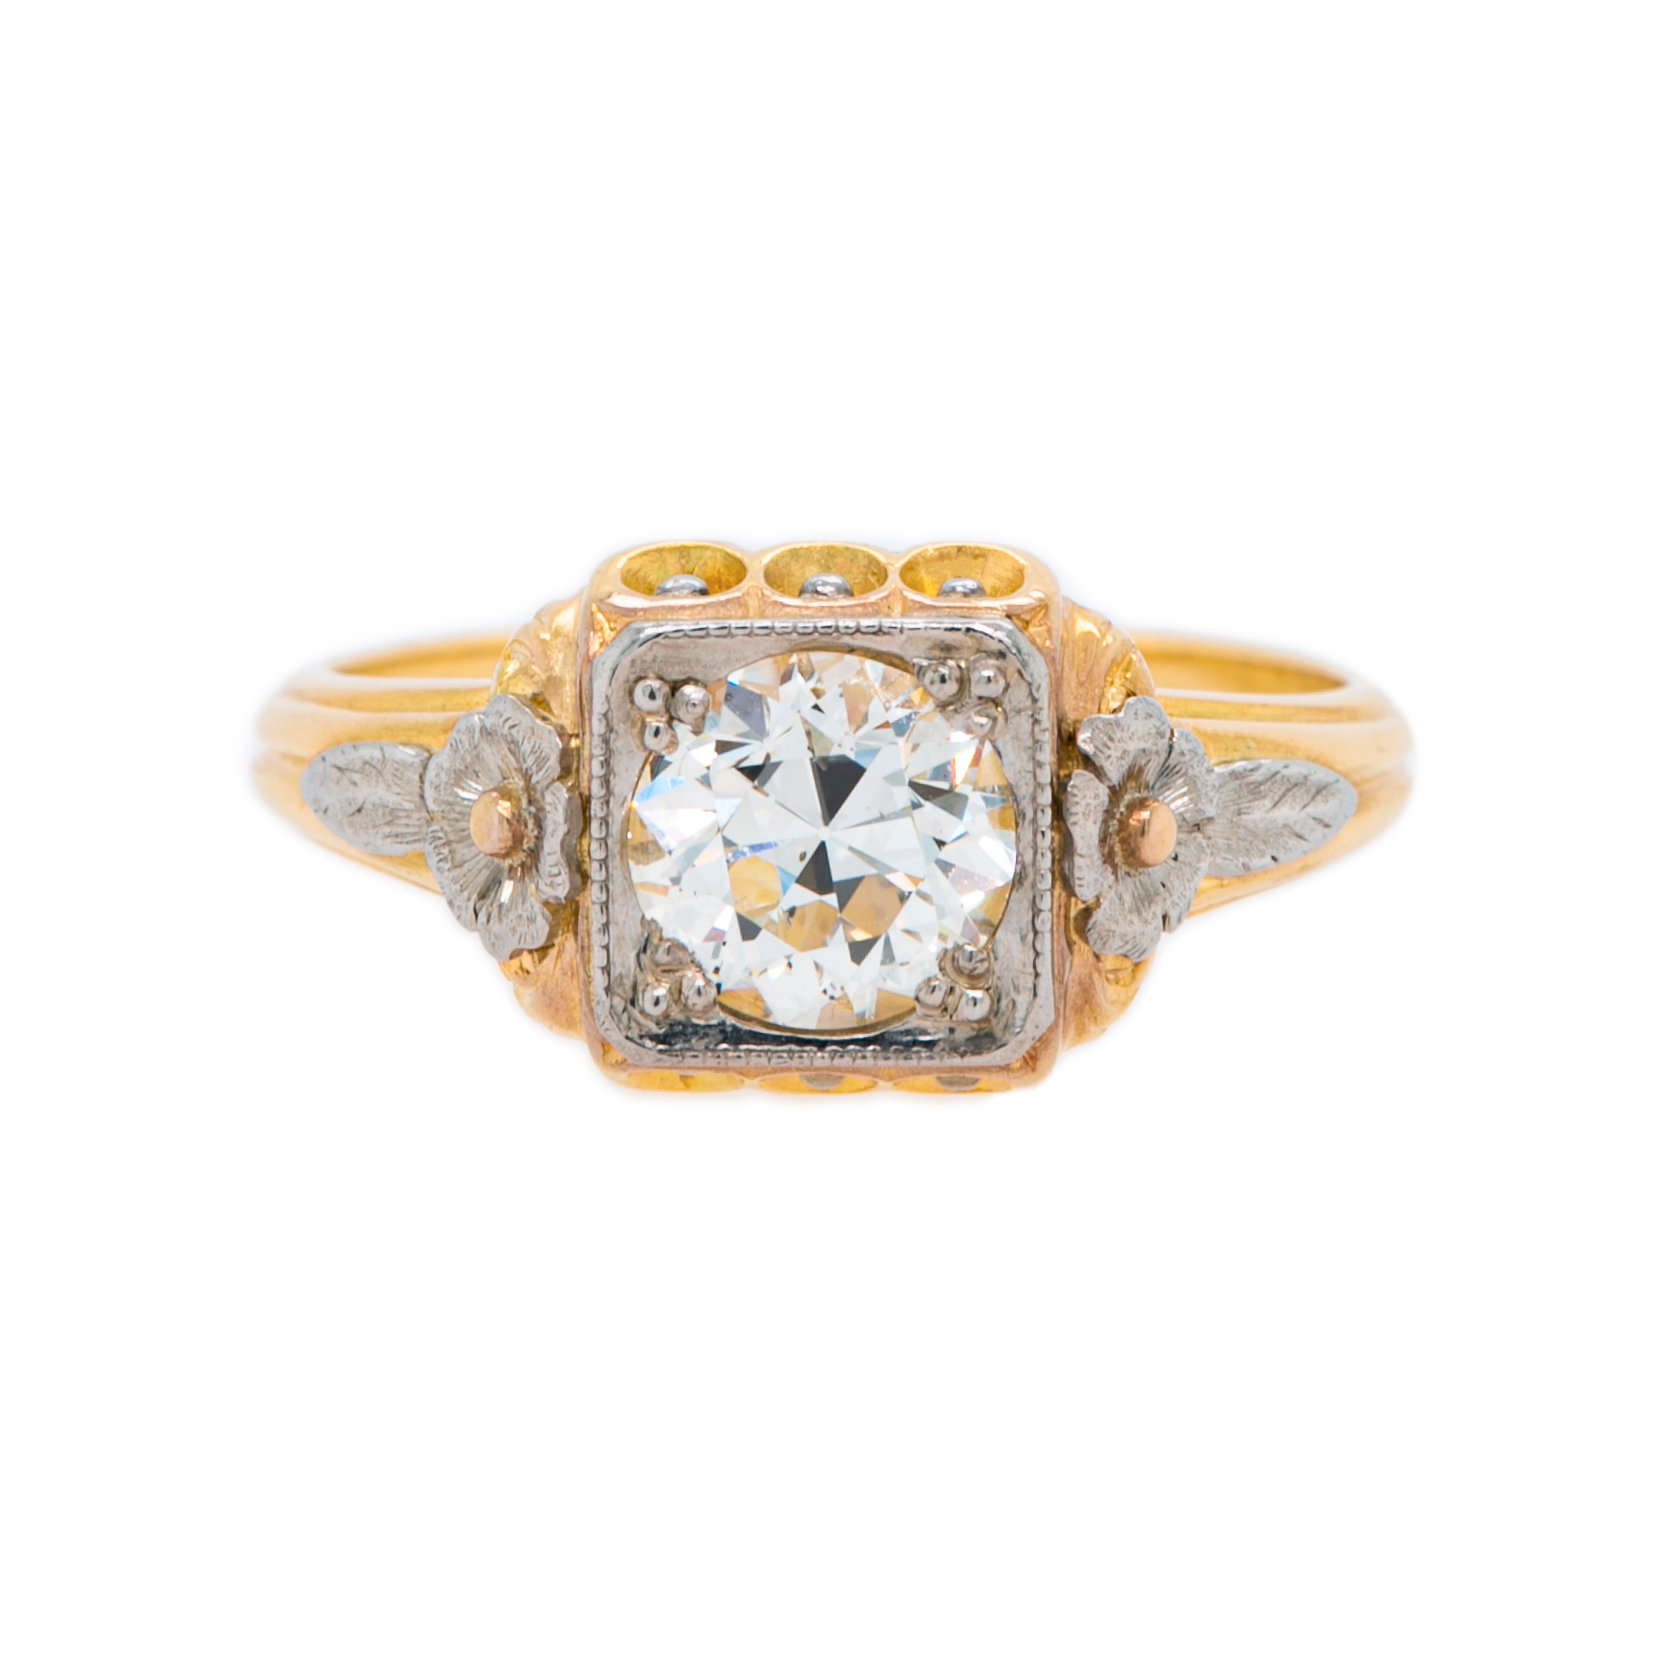 Art Nouveau Mixed Metal Diamond Engagement Ring | Sycamore Square